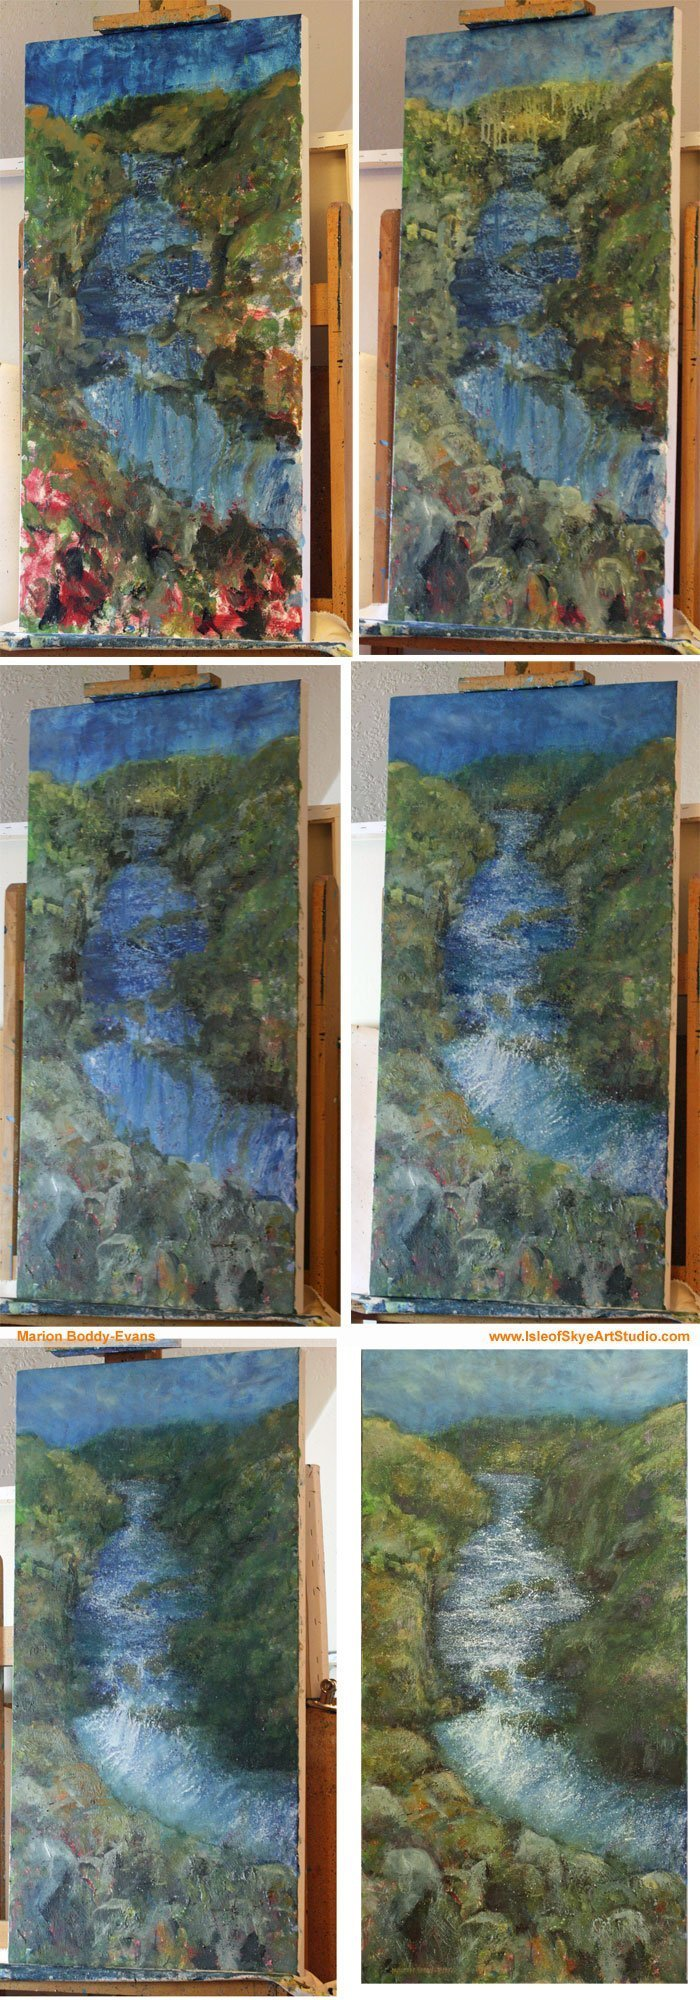 Ebb & Flow Exhibition: River #1 Step by step